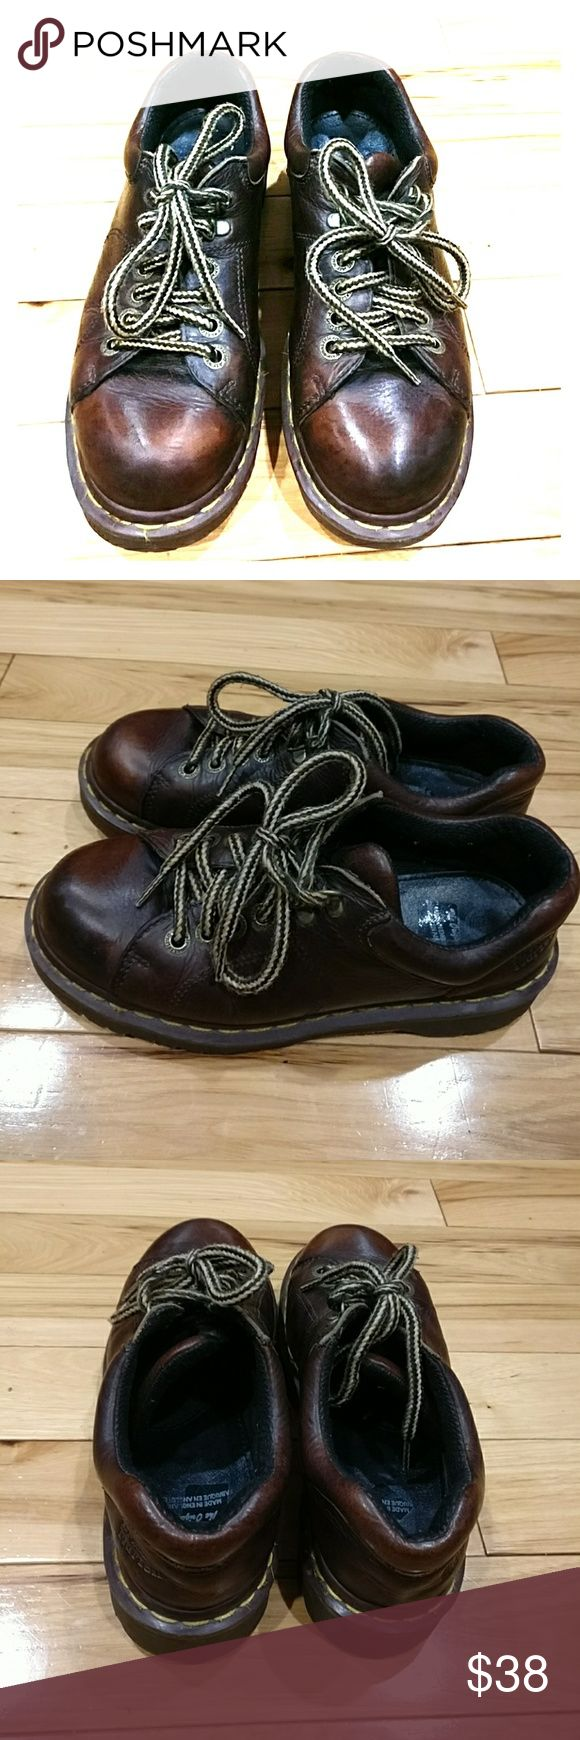 Dr. Martens women's oxfords shoes size 6 Dr. Martens women's Oxford shoes size 6 brown color. Excellent condition . very comfortable. I'm selling them an excellent price so get them today! The length is 11 and 1 /4 and the width is 4 and 1/4 inches on the ball of the foot. Dr. Martens Shoes